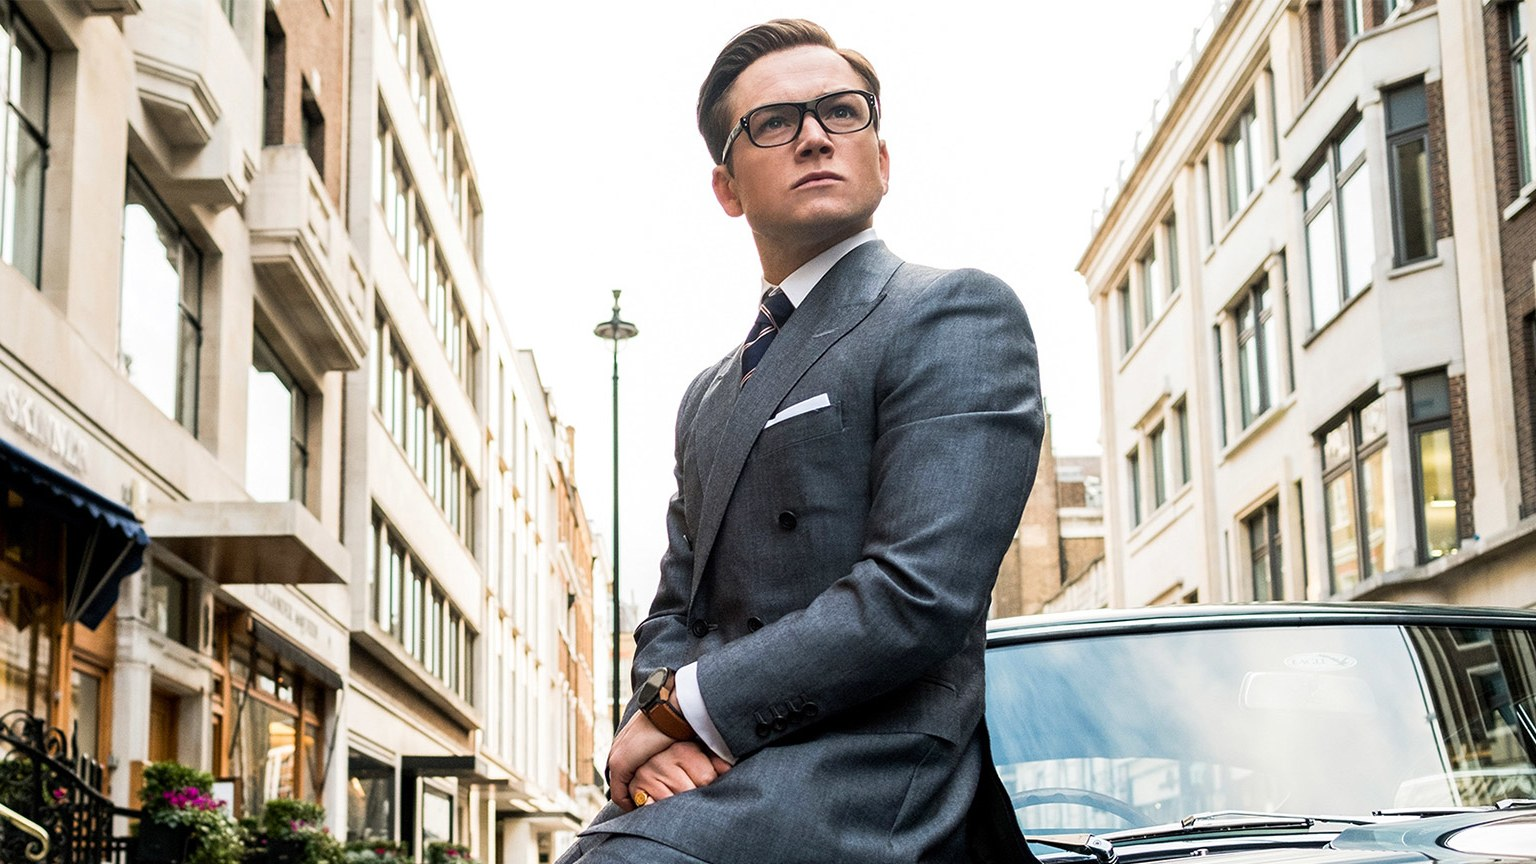 Get Suited and Booted With Kingsman: The Golden Circle